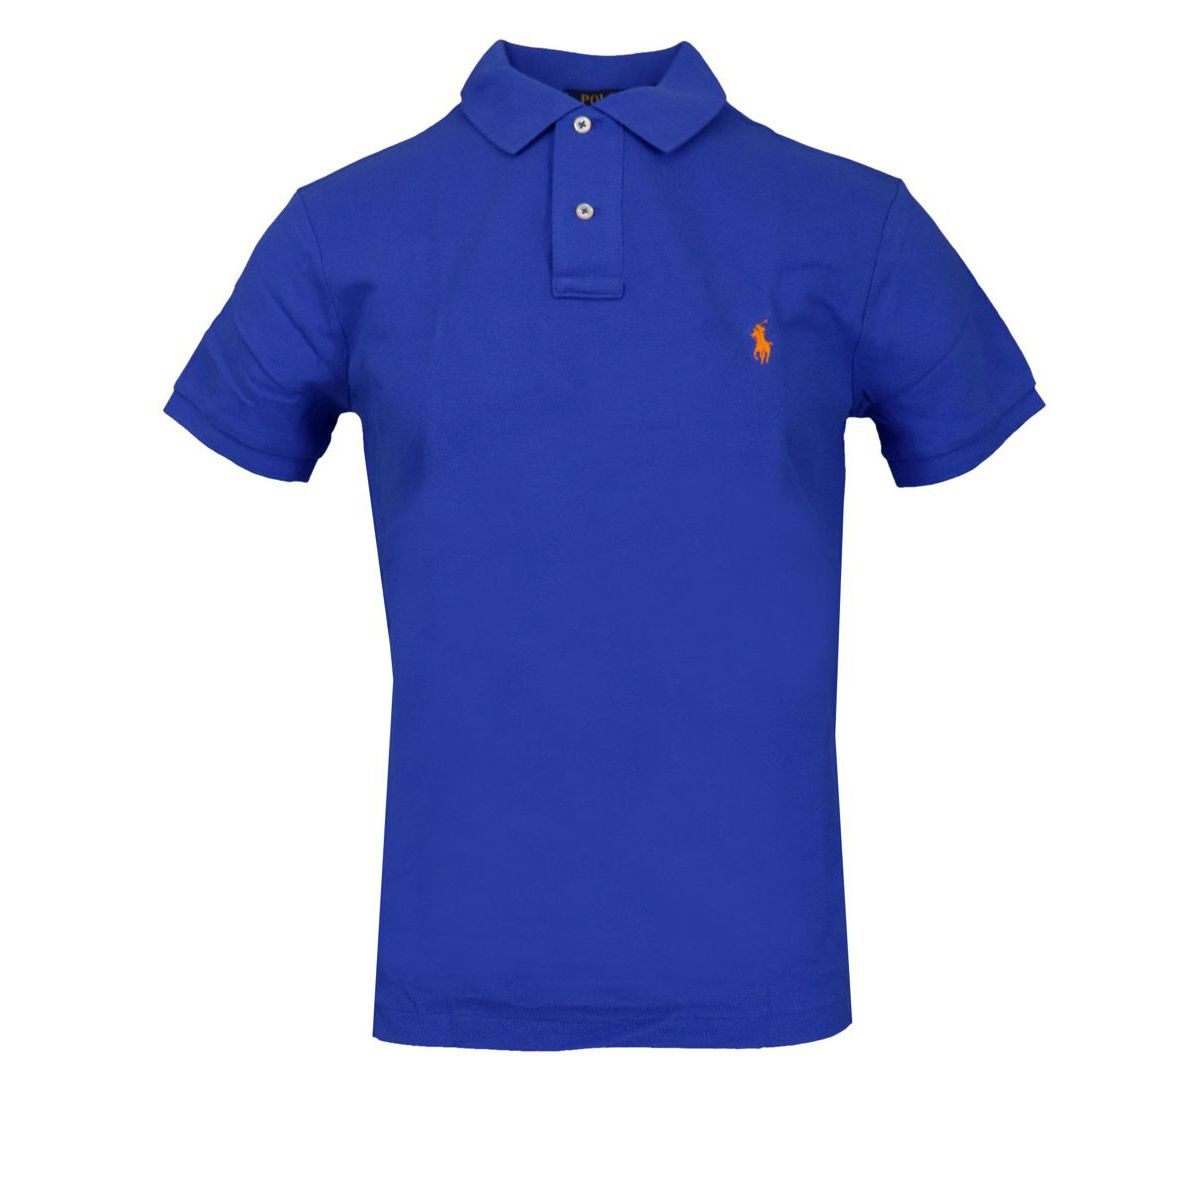 Slim-fit polo shirt In cotton piqué with logo Indigo Polo Ralph Lauren